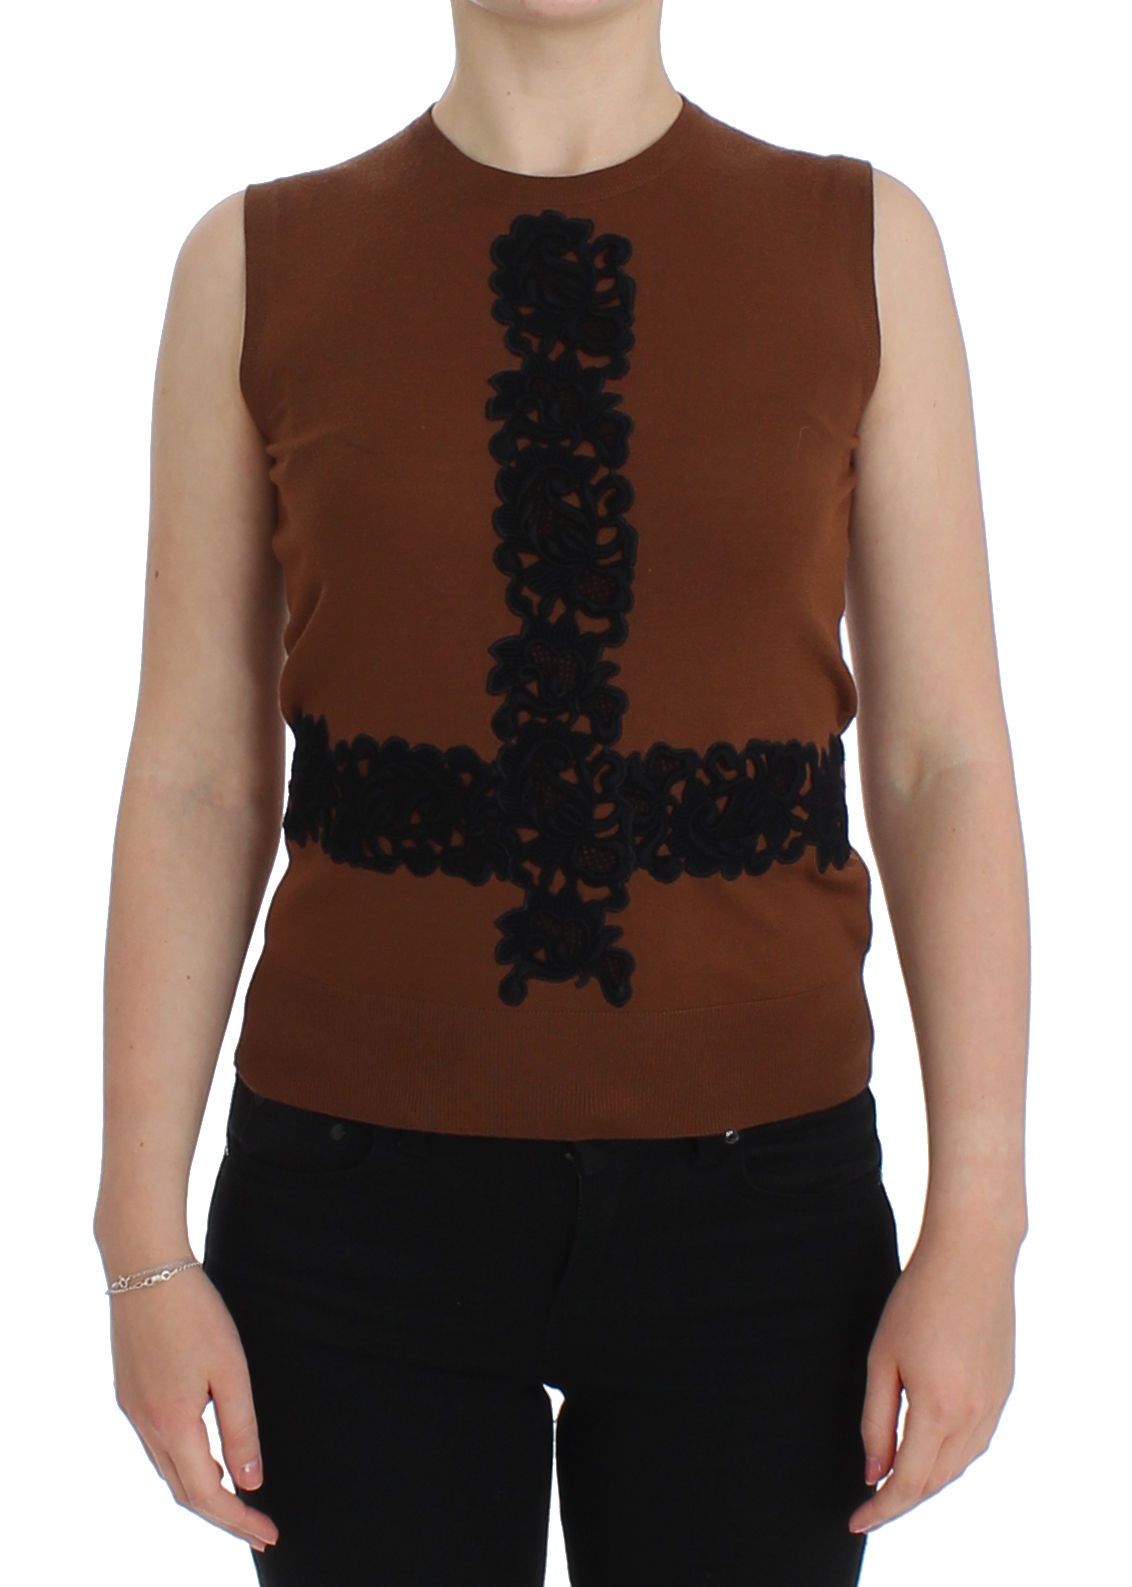 Image of Dolce & Gabbana Brown Wool Black Lace Vest Sweater Top